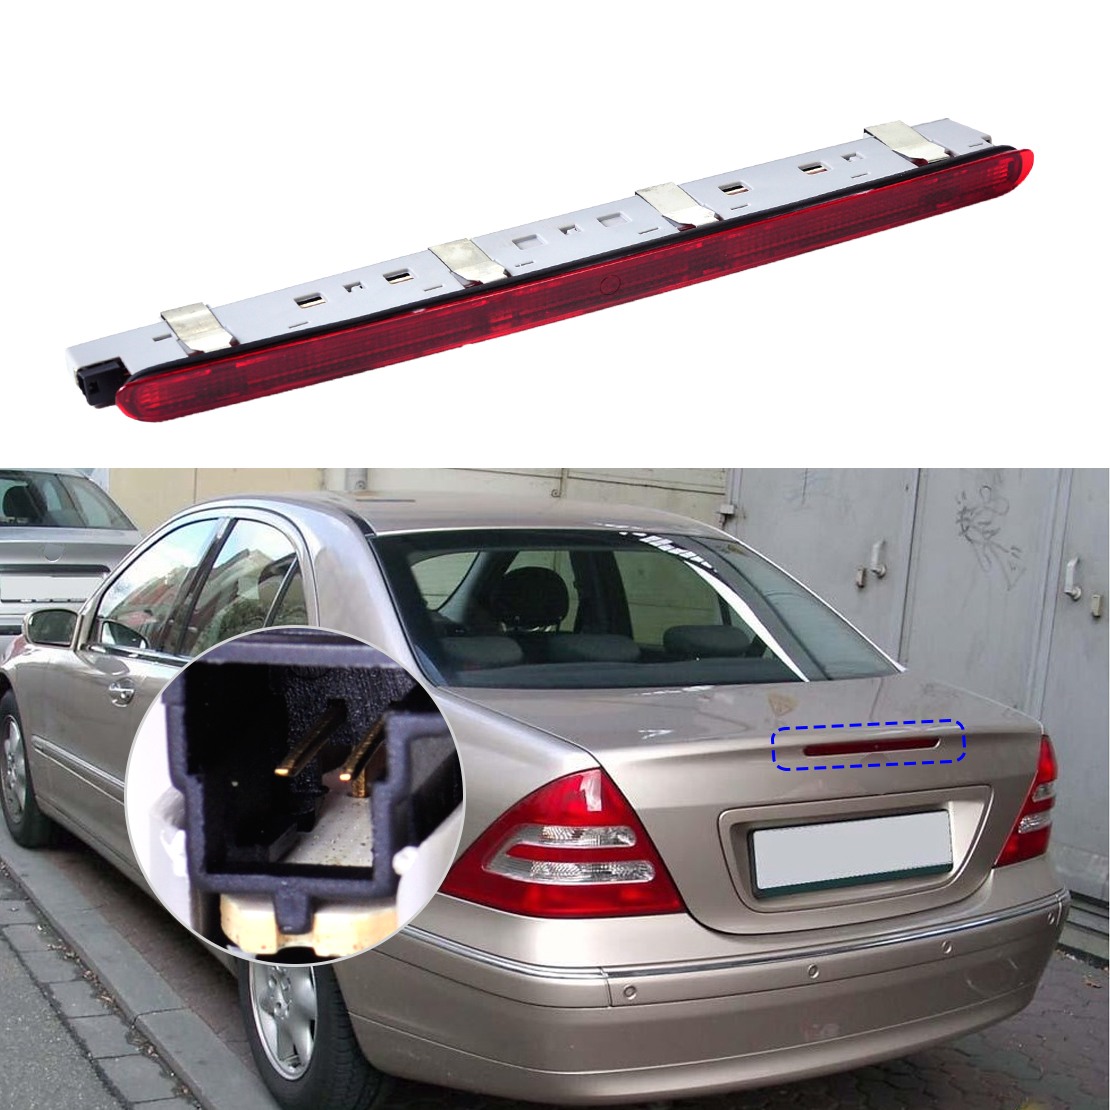 small resolution of beler rear tail stop lamp third brake light for mercedes benz w203 c230 c240 c280 c350 2000 2001 2002 2003 2004 2005 2006 2007